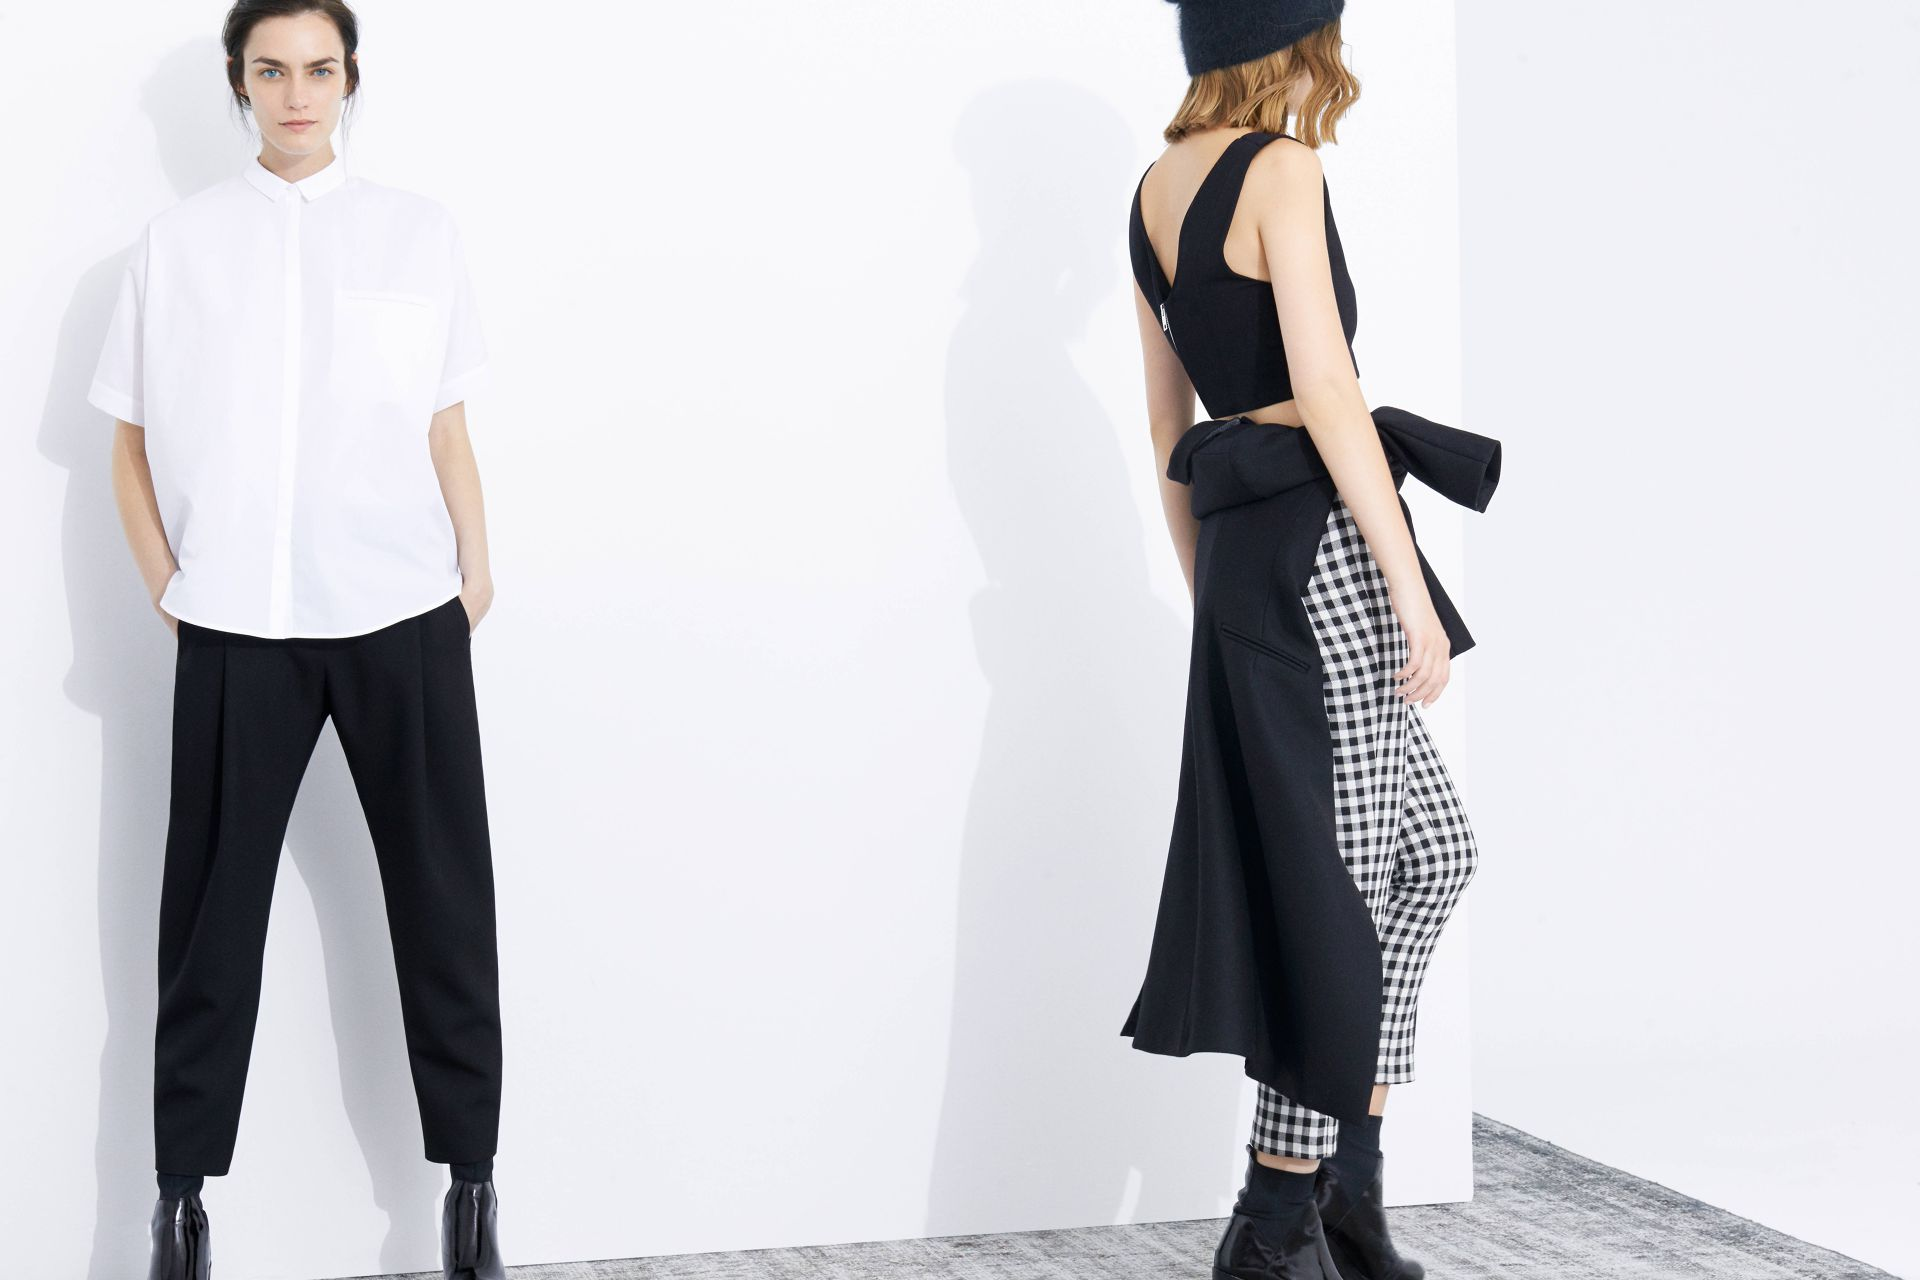 Zara Fall 2013 Trends Monochrome